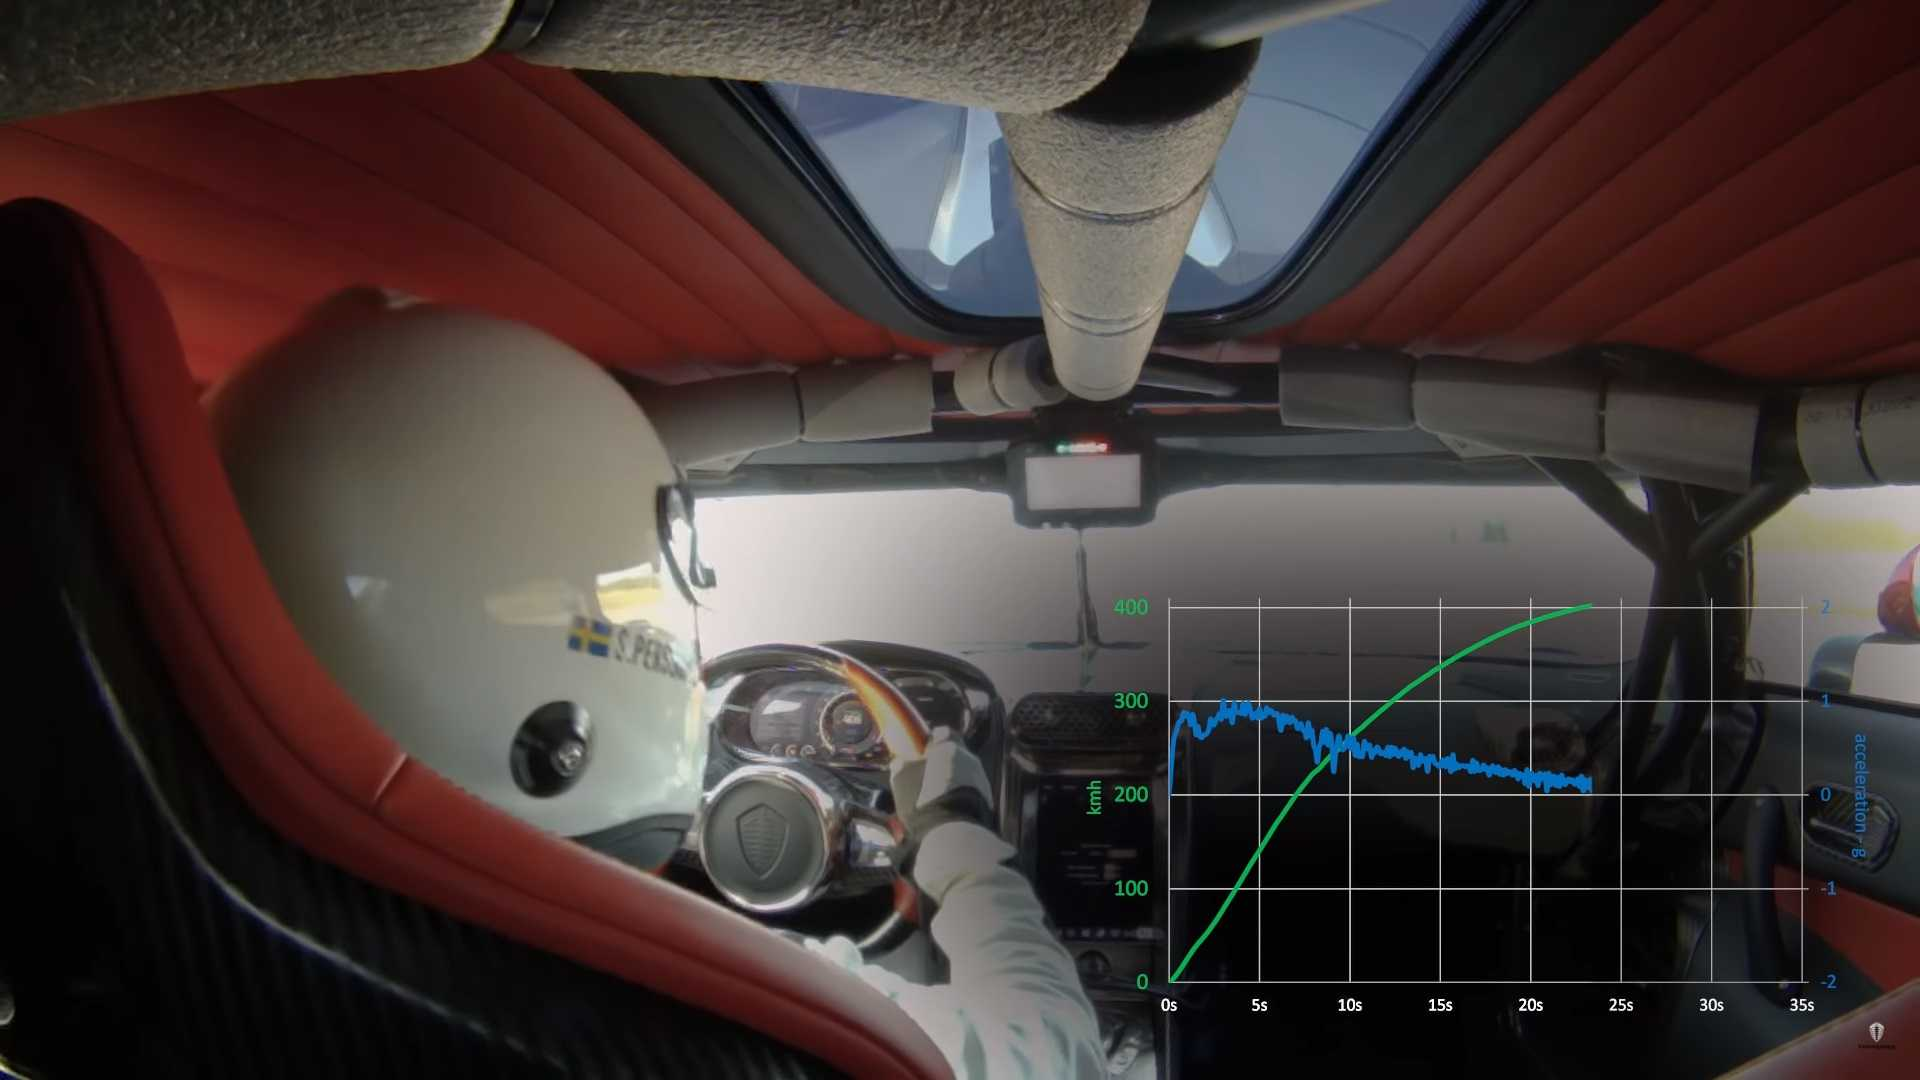 Hop inside the Koenigsegg Regera for its record 0-249-0 mph run